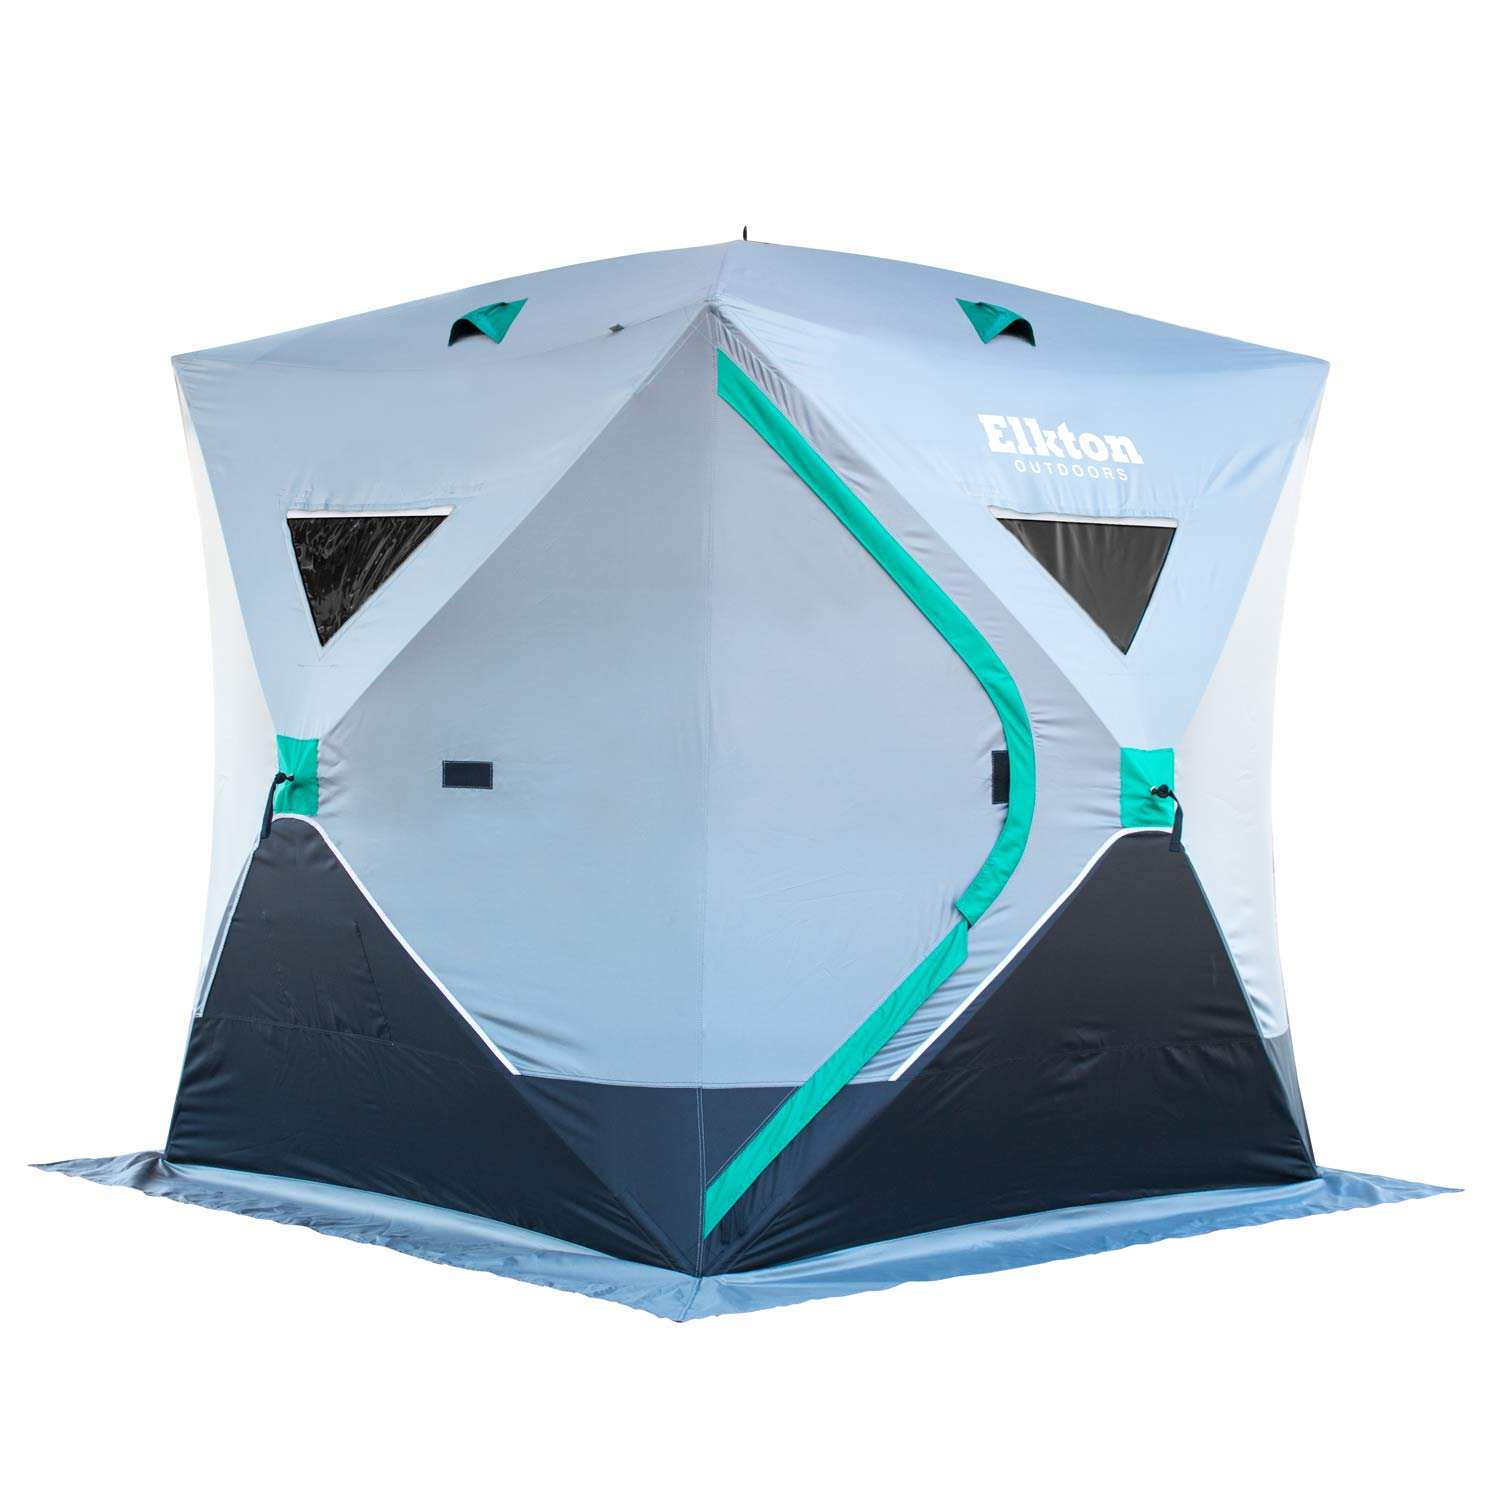 Elkton Outdoors 3 Person Ice Fishing Tent With Carry Pack by Elkton Outdoors